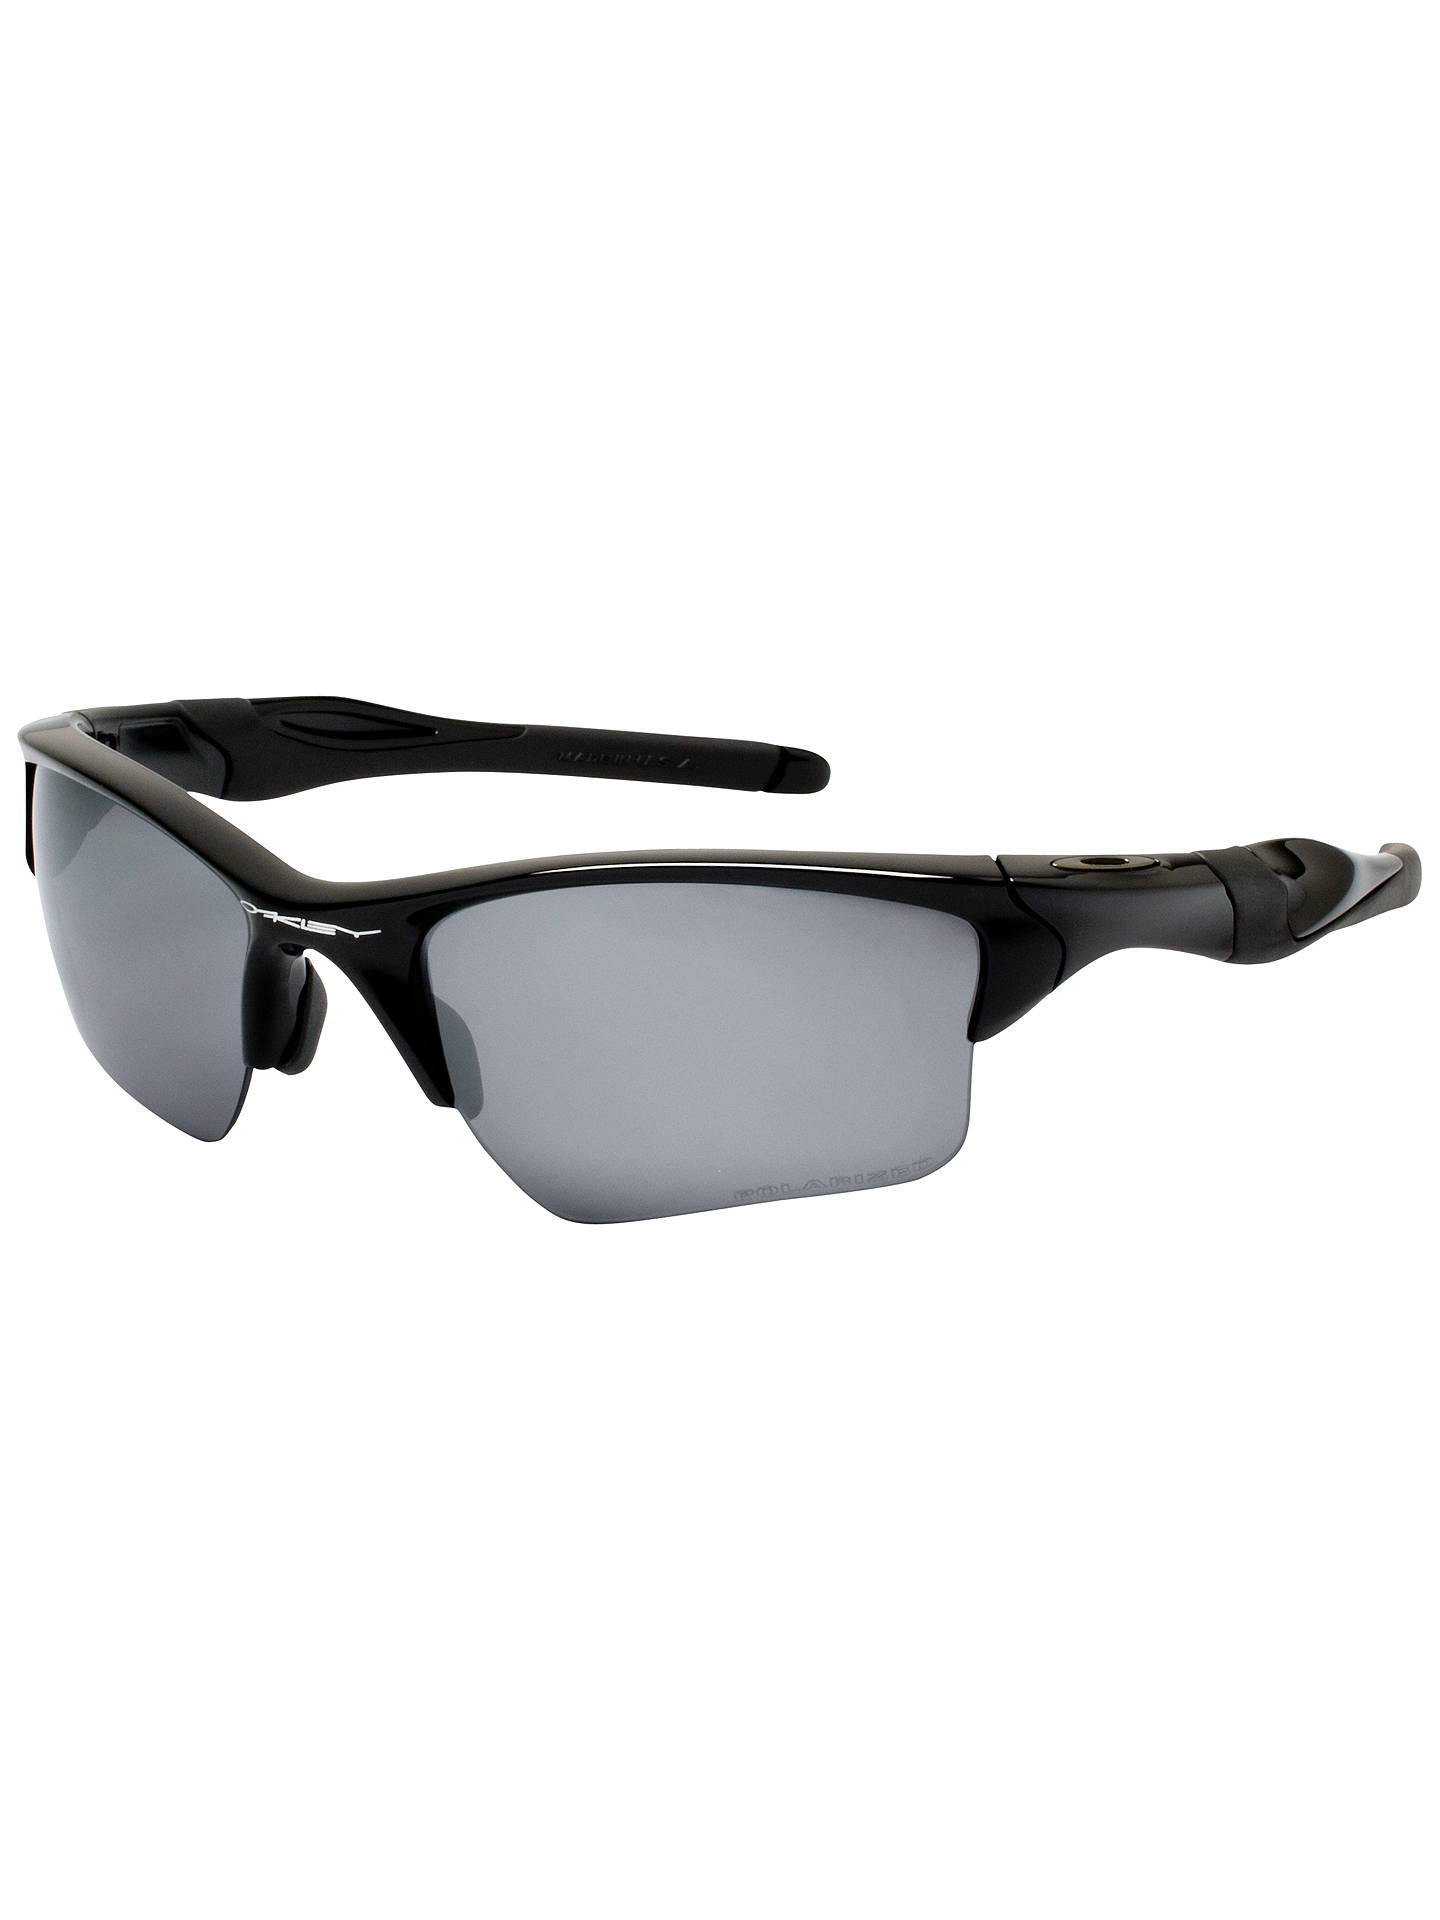 Oakley Half Jacket 2 0 Xl >> Oakley Oo9154 Half Jacket 2 0xl Rectangular Polarised Sunglasses Polished Black